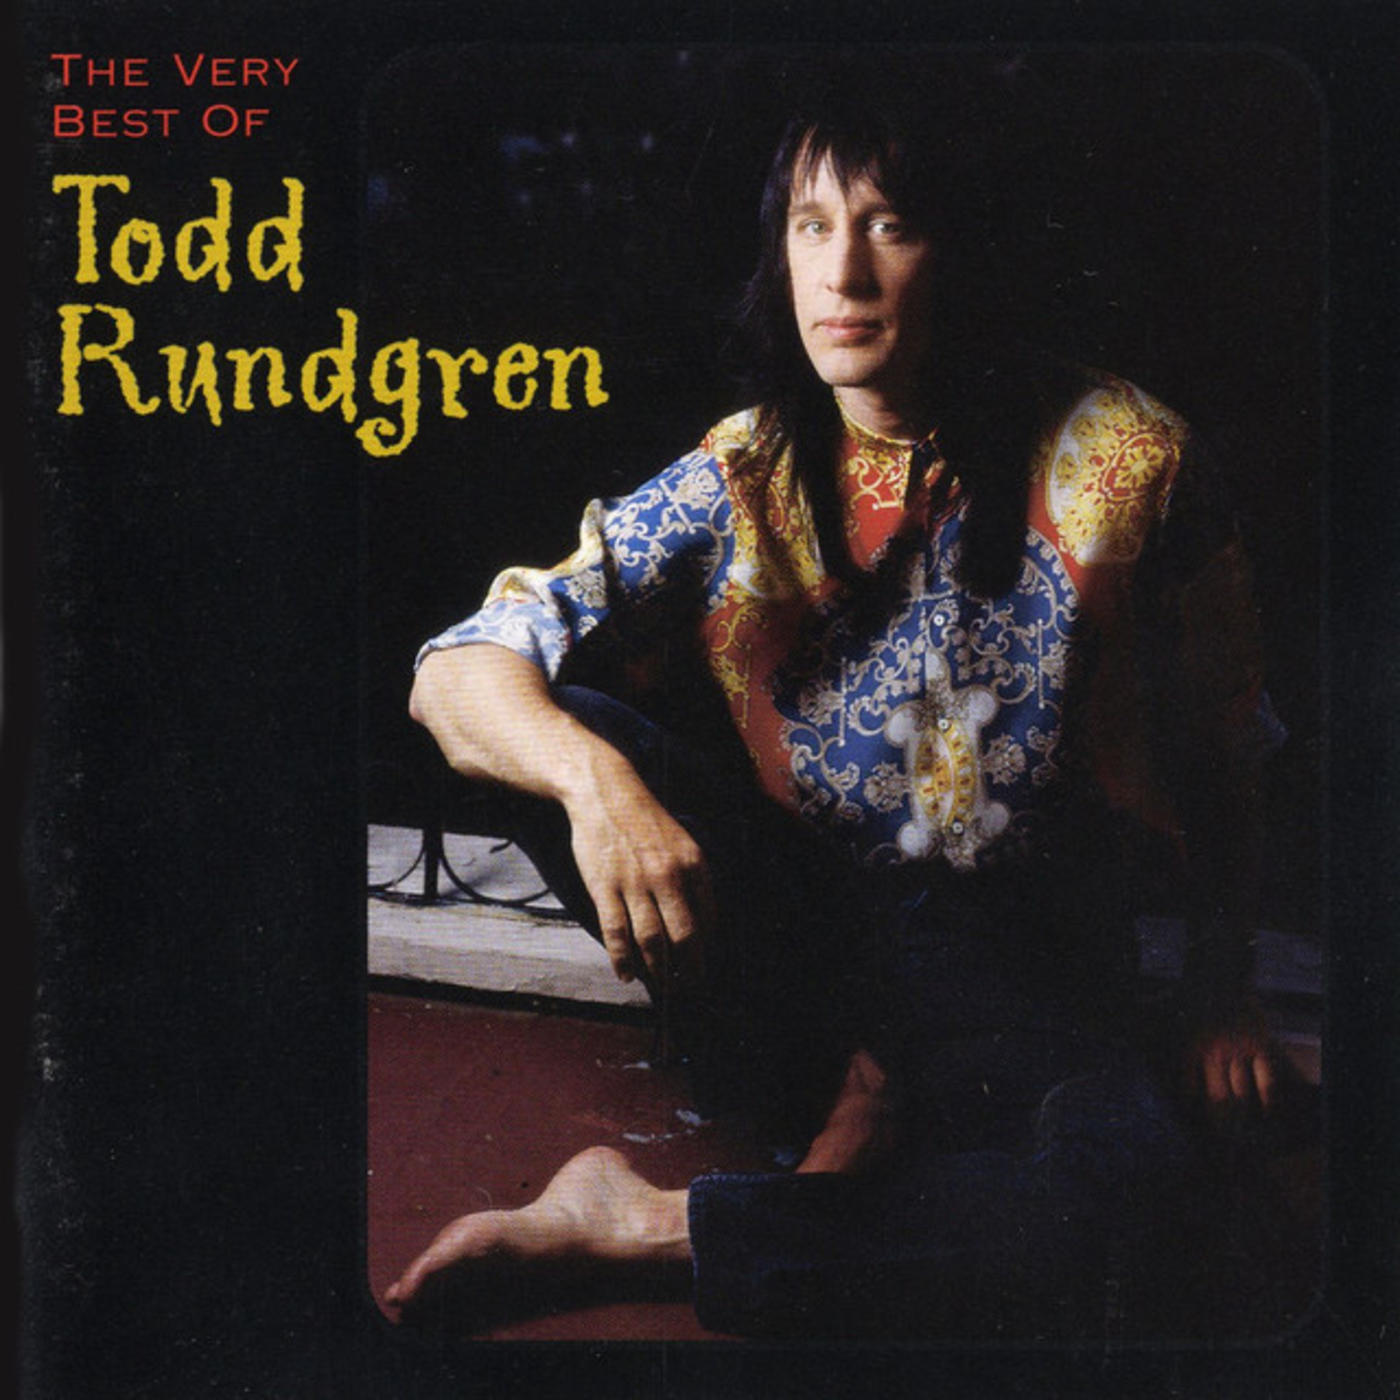 The Very Best Of Todd Rundgren